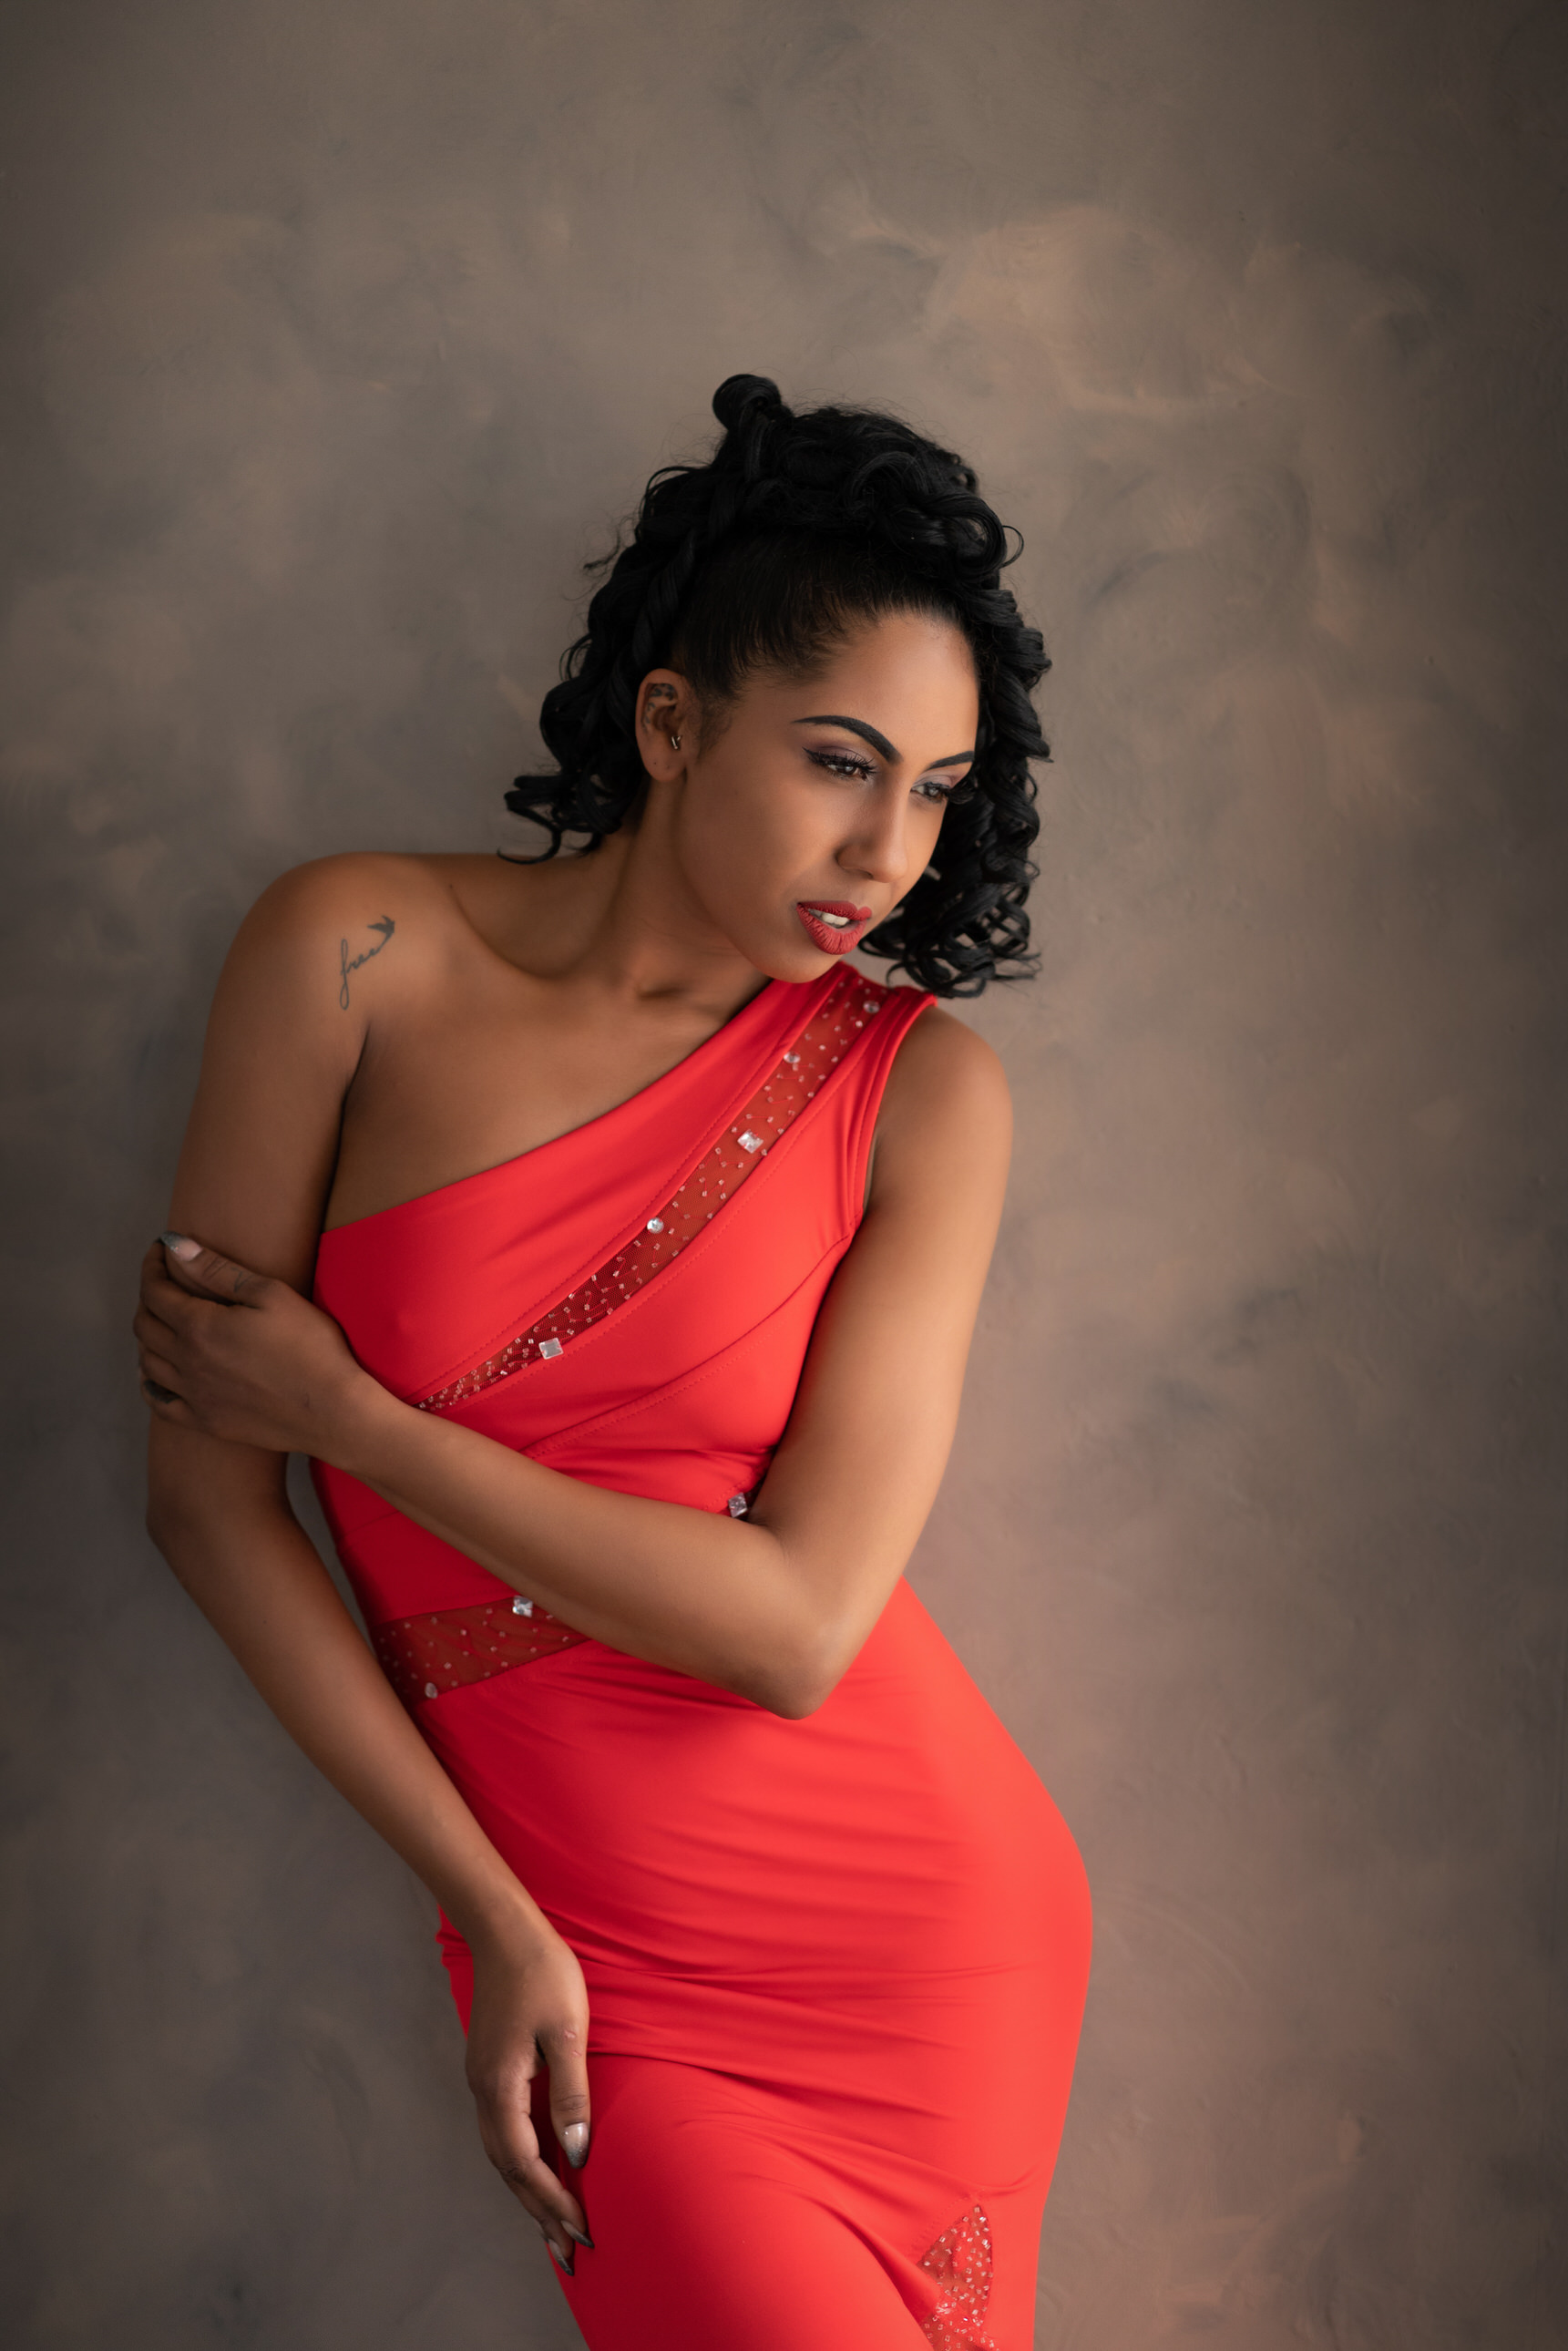 Stunning model in red dress by Boudoir Photographer Lancashire